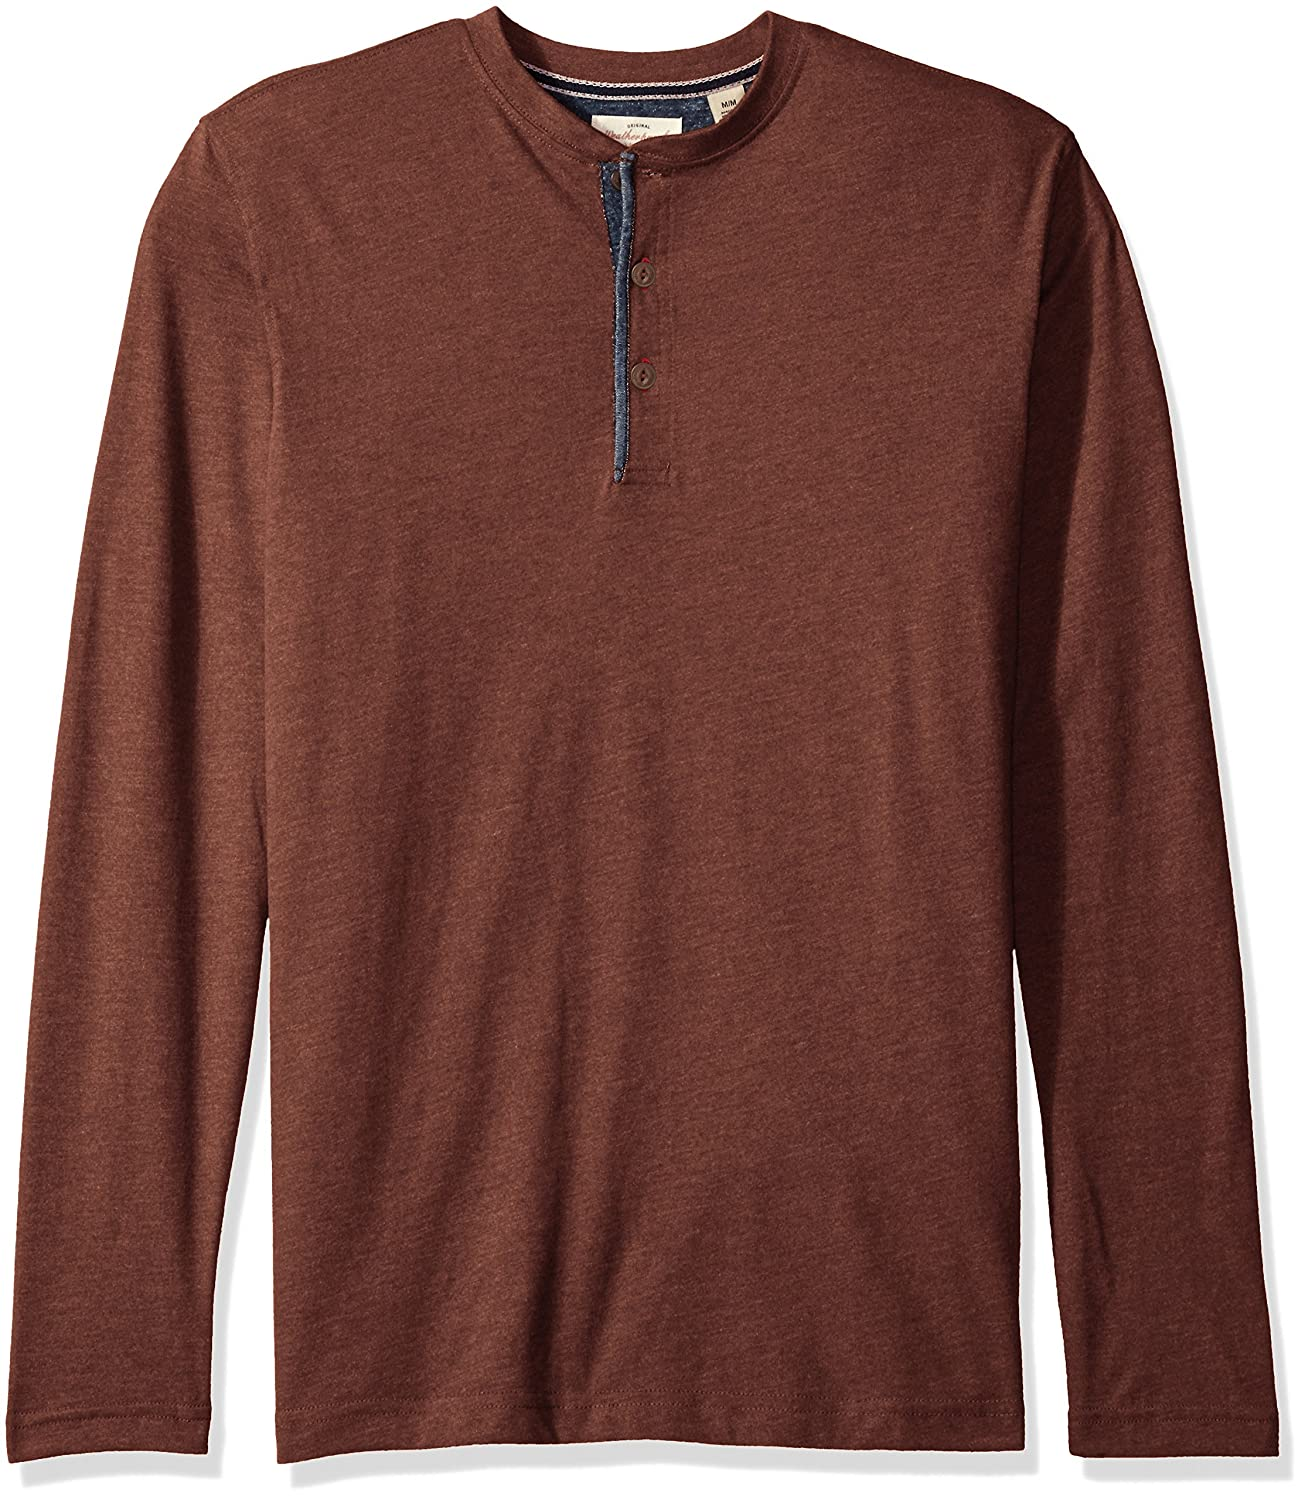 bf47caab174 Weatherproof Vintage Men s Brushed Jersey Henley with Chambray Trim ...